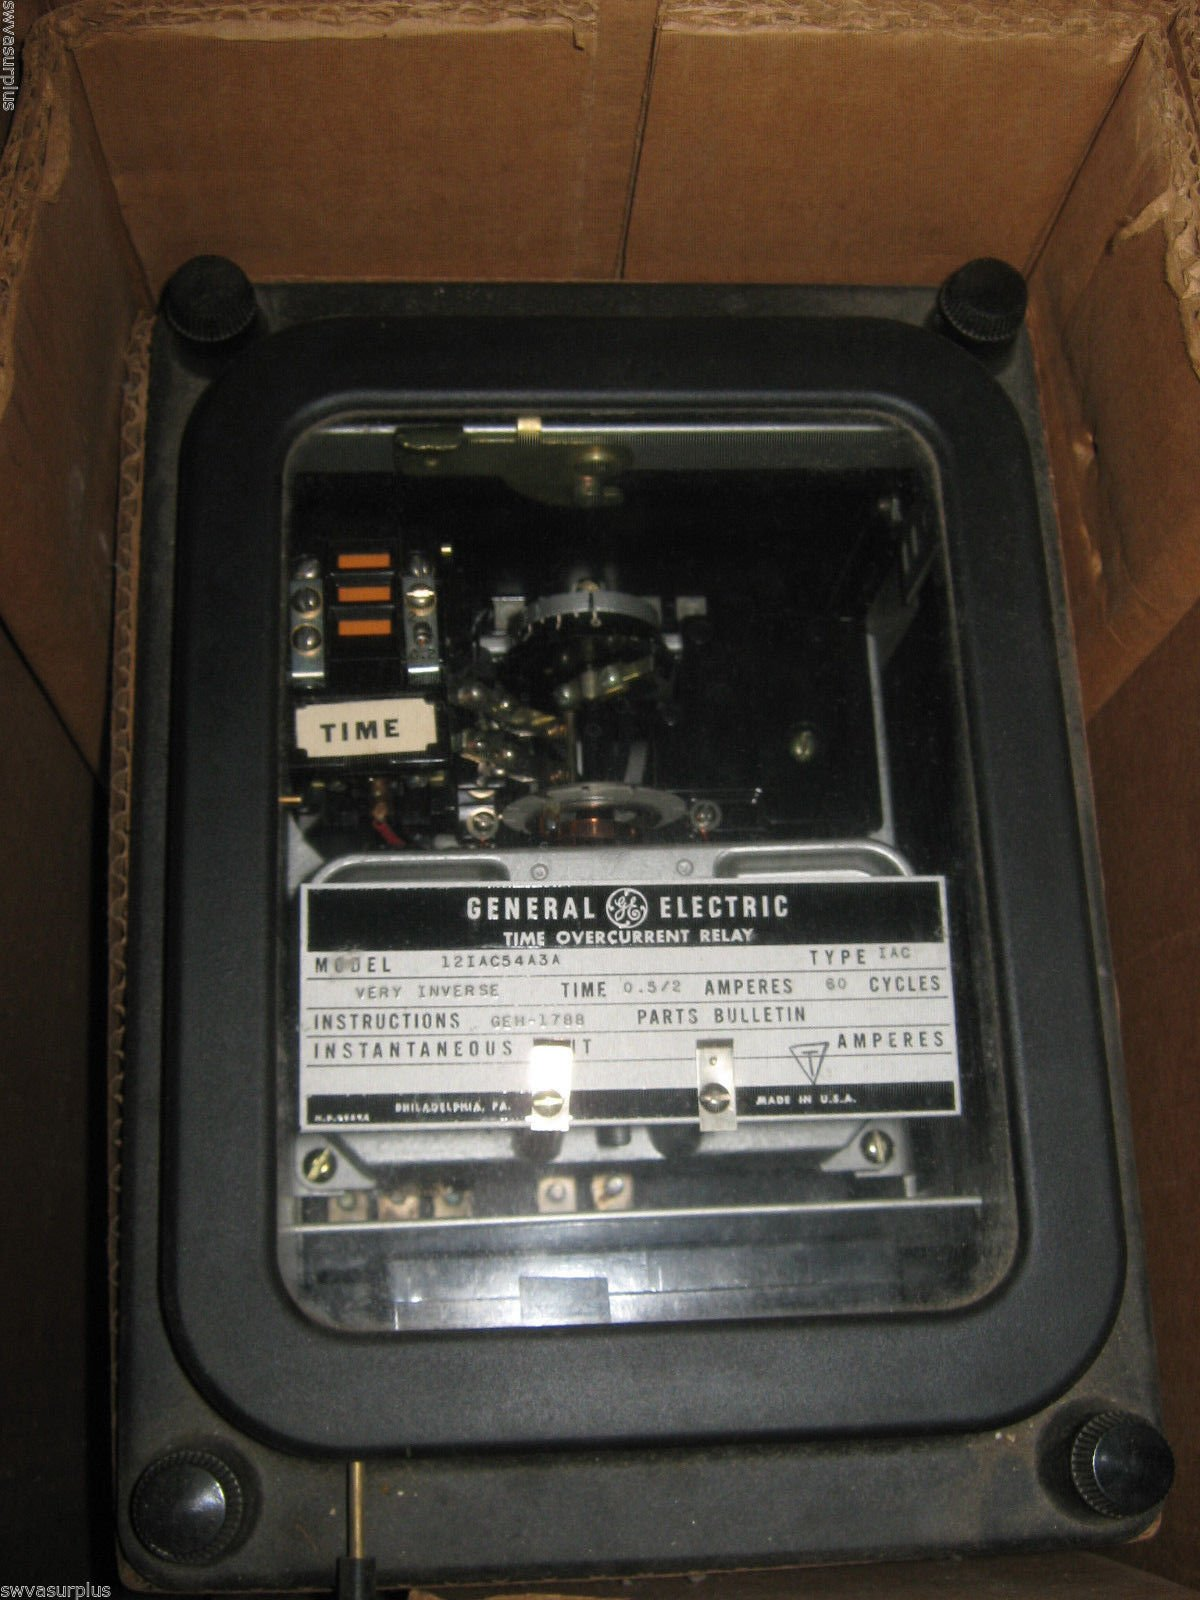 Ge 12IAC54A3A Time Overcurrent Relay, in box